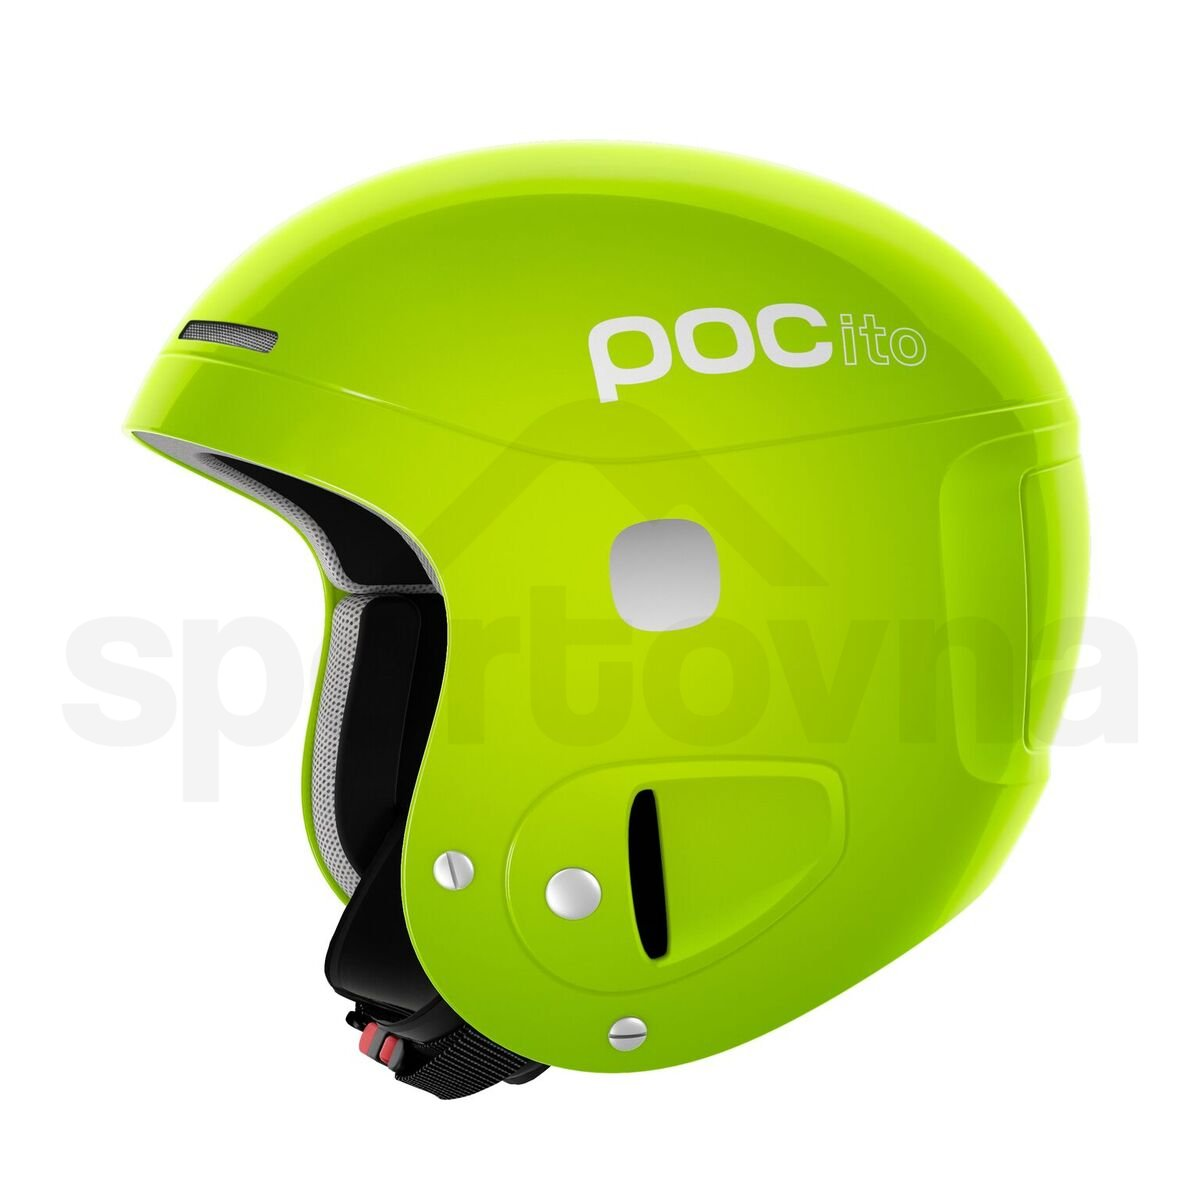 POCito Helmet_10210_fluorescent yellow_lime green